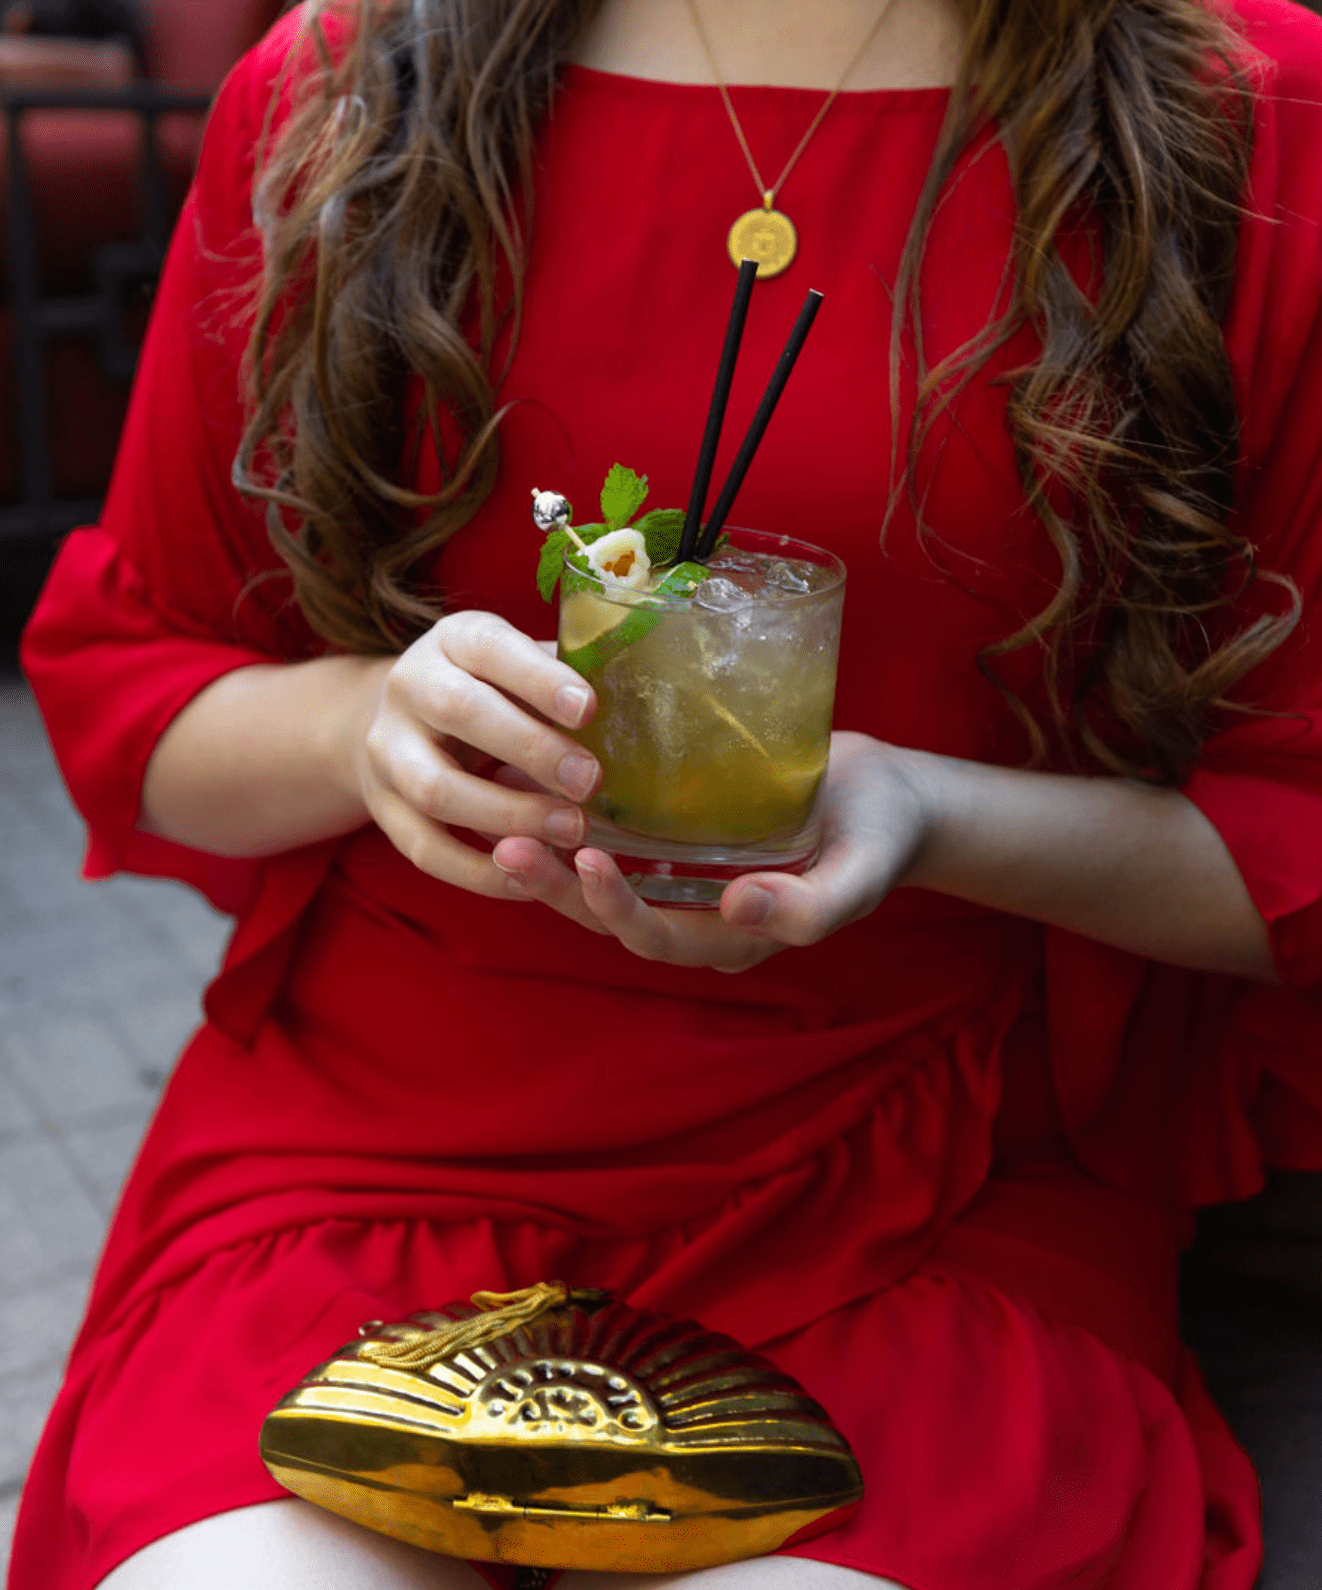 Red Dress and Golden Metal Fan Handbag by From St. Xavier at the Peninsula Hotel Chicago Midwest Travel Ideas Outfit Ideas Lychee Drink Shanghai Terrace Cantonese Delicacies Best Chinese Food in Chicago Award Winning Rooftop Dining Luxury Restaurants Midwest